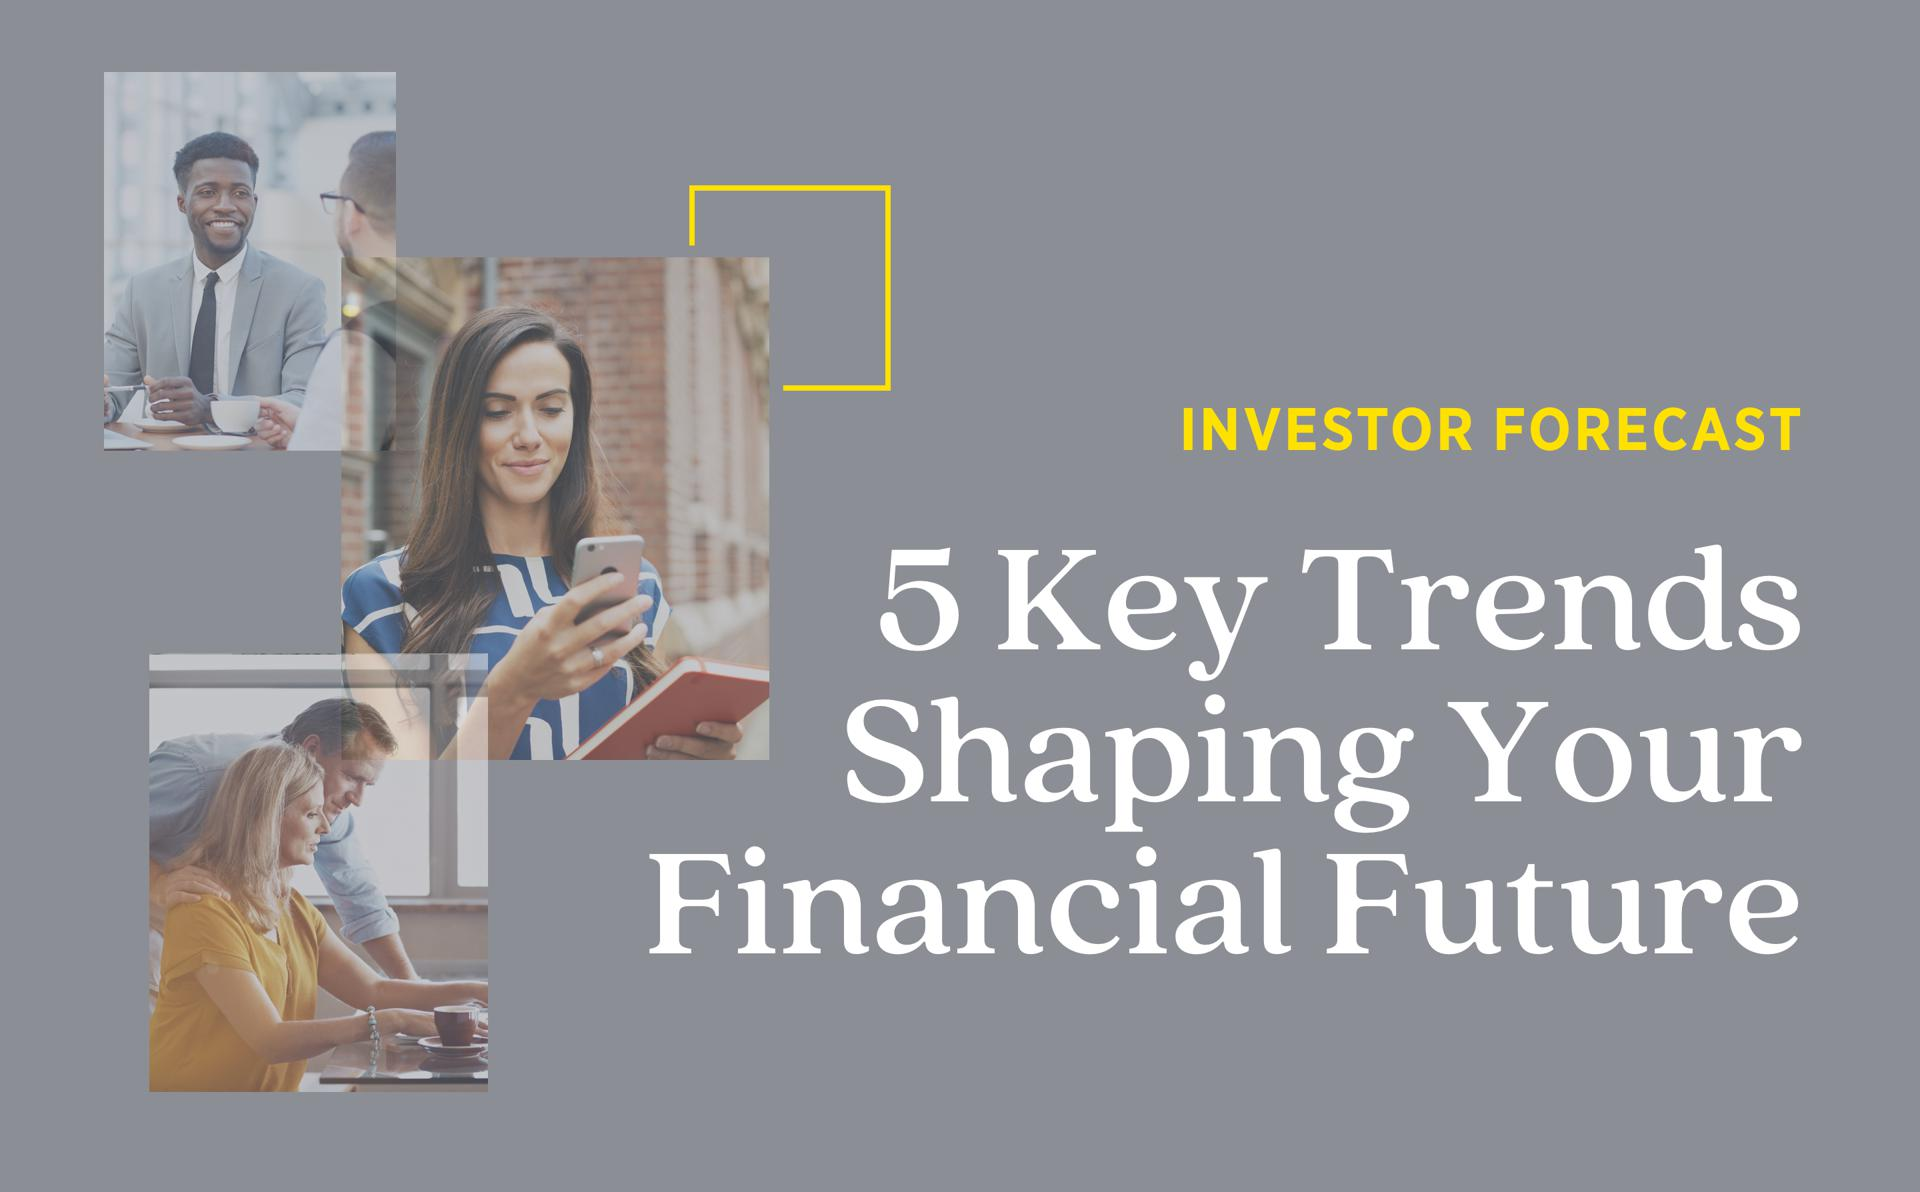 Investor Forecast: 5 Key Trends Shaping Your Financial Future